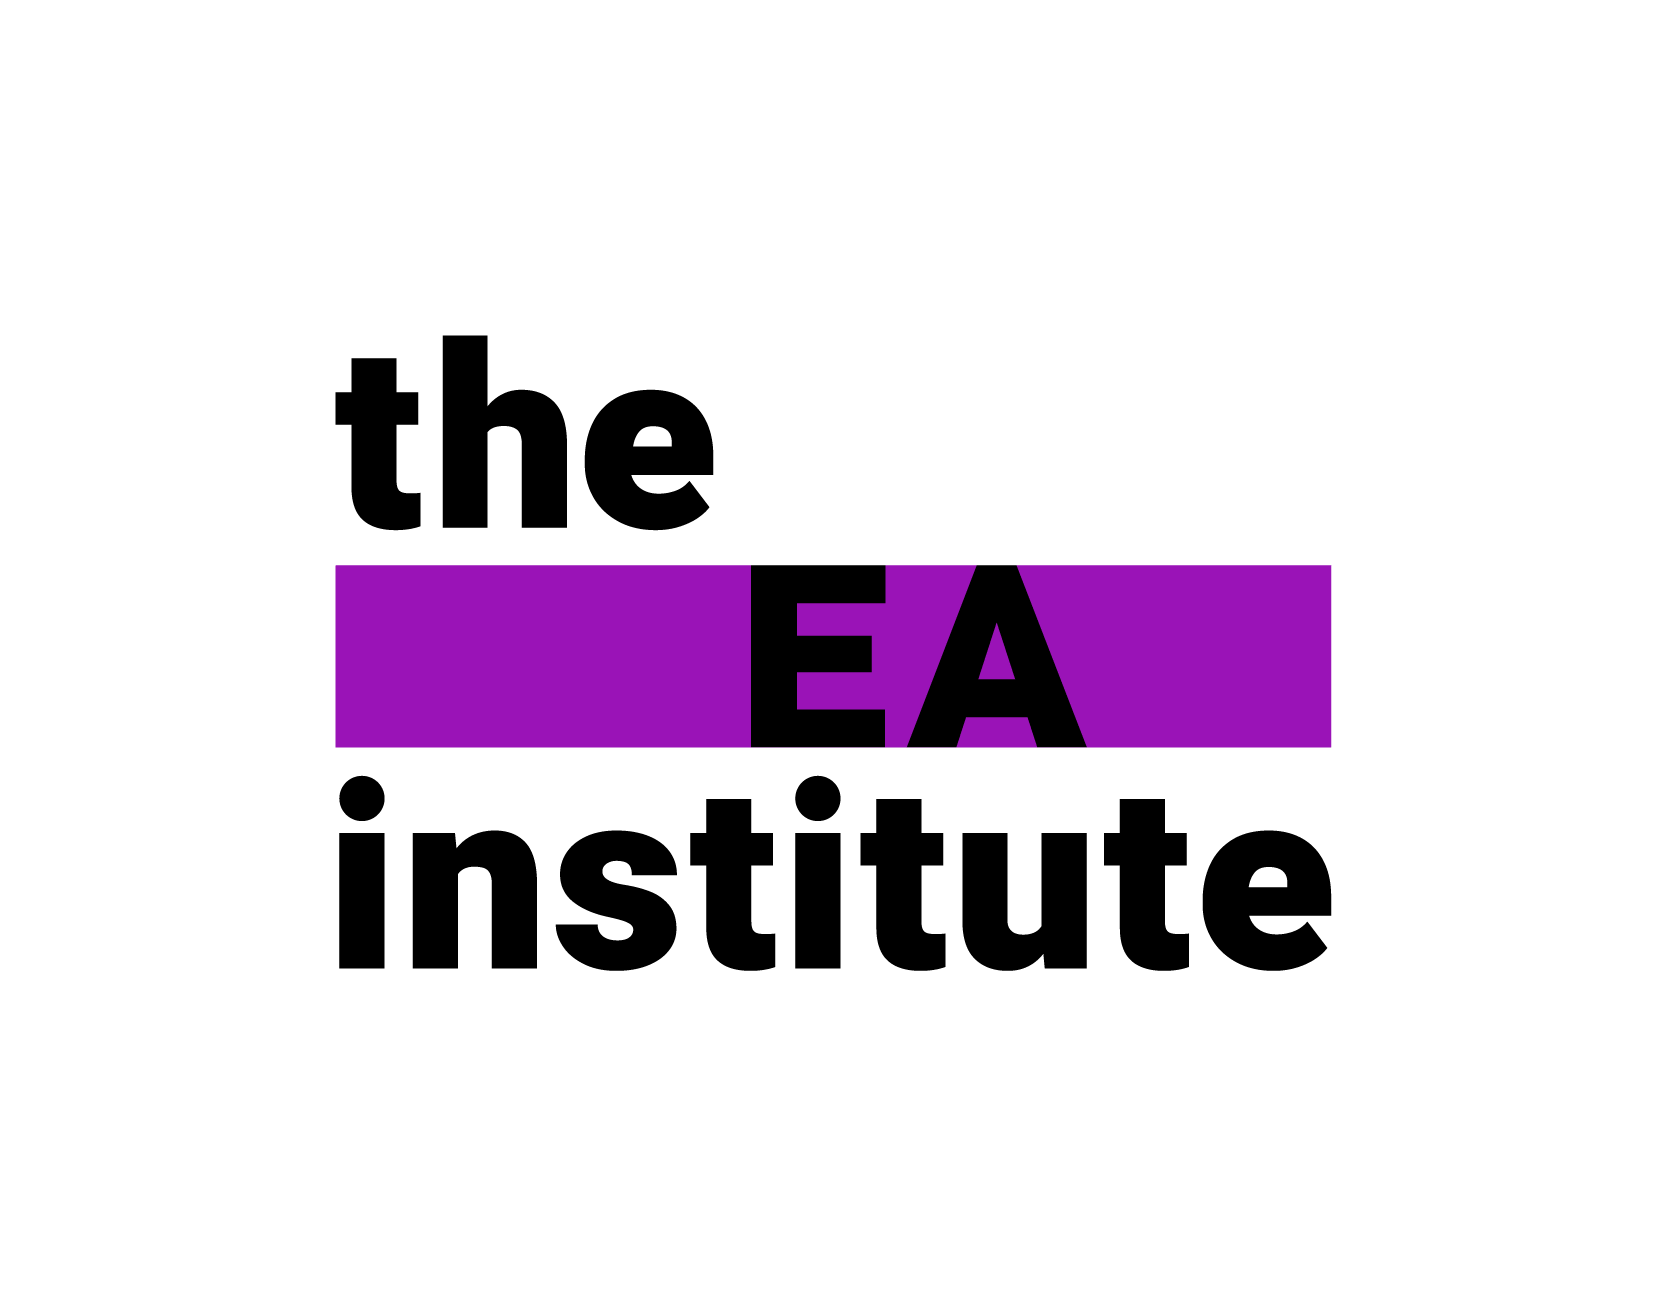 The EA Institute